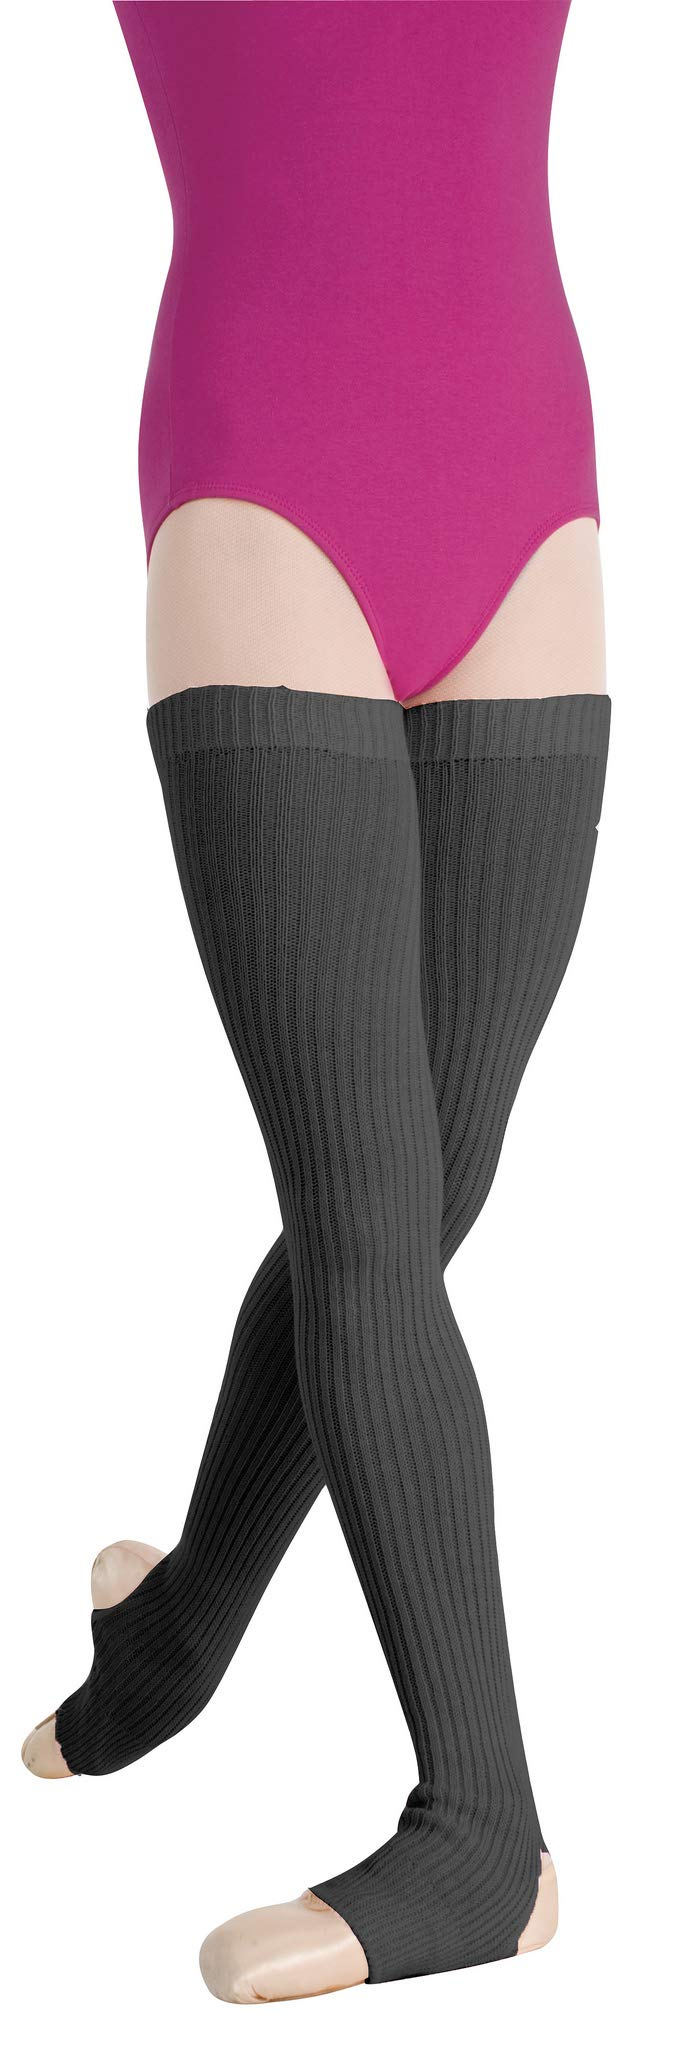 Body Wrappers 36'' Charcoal Grey Stirrup Thigh High Leg Warmers - 94